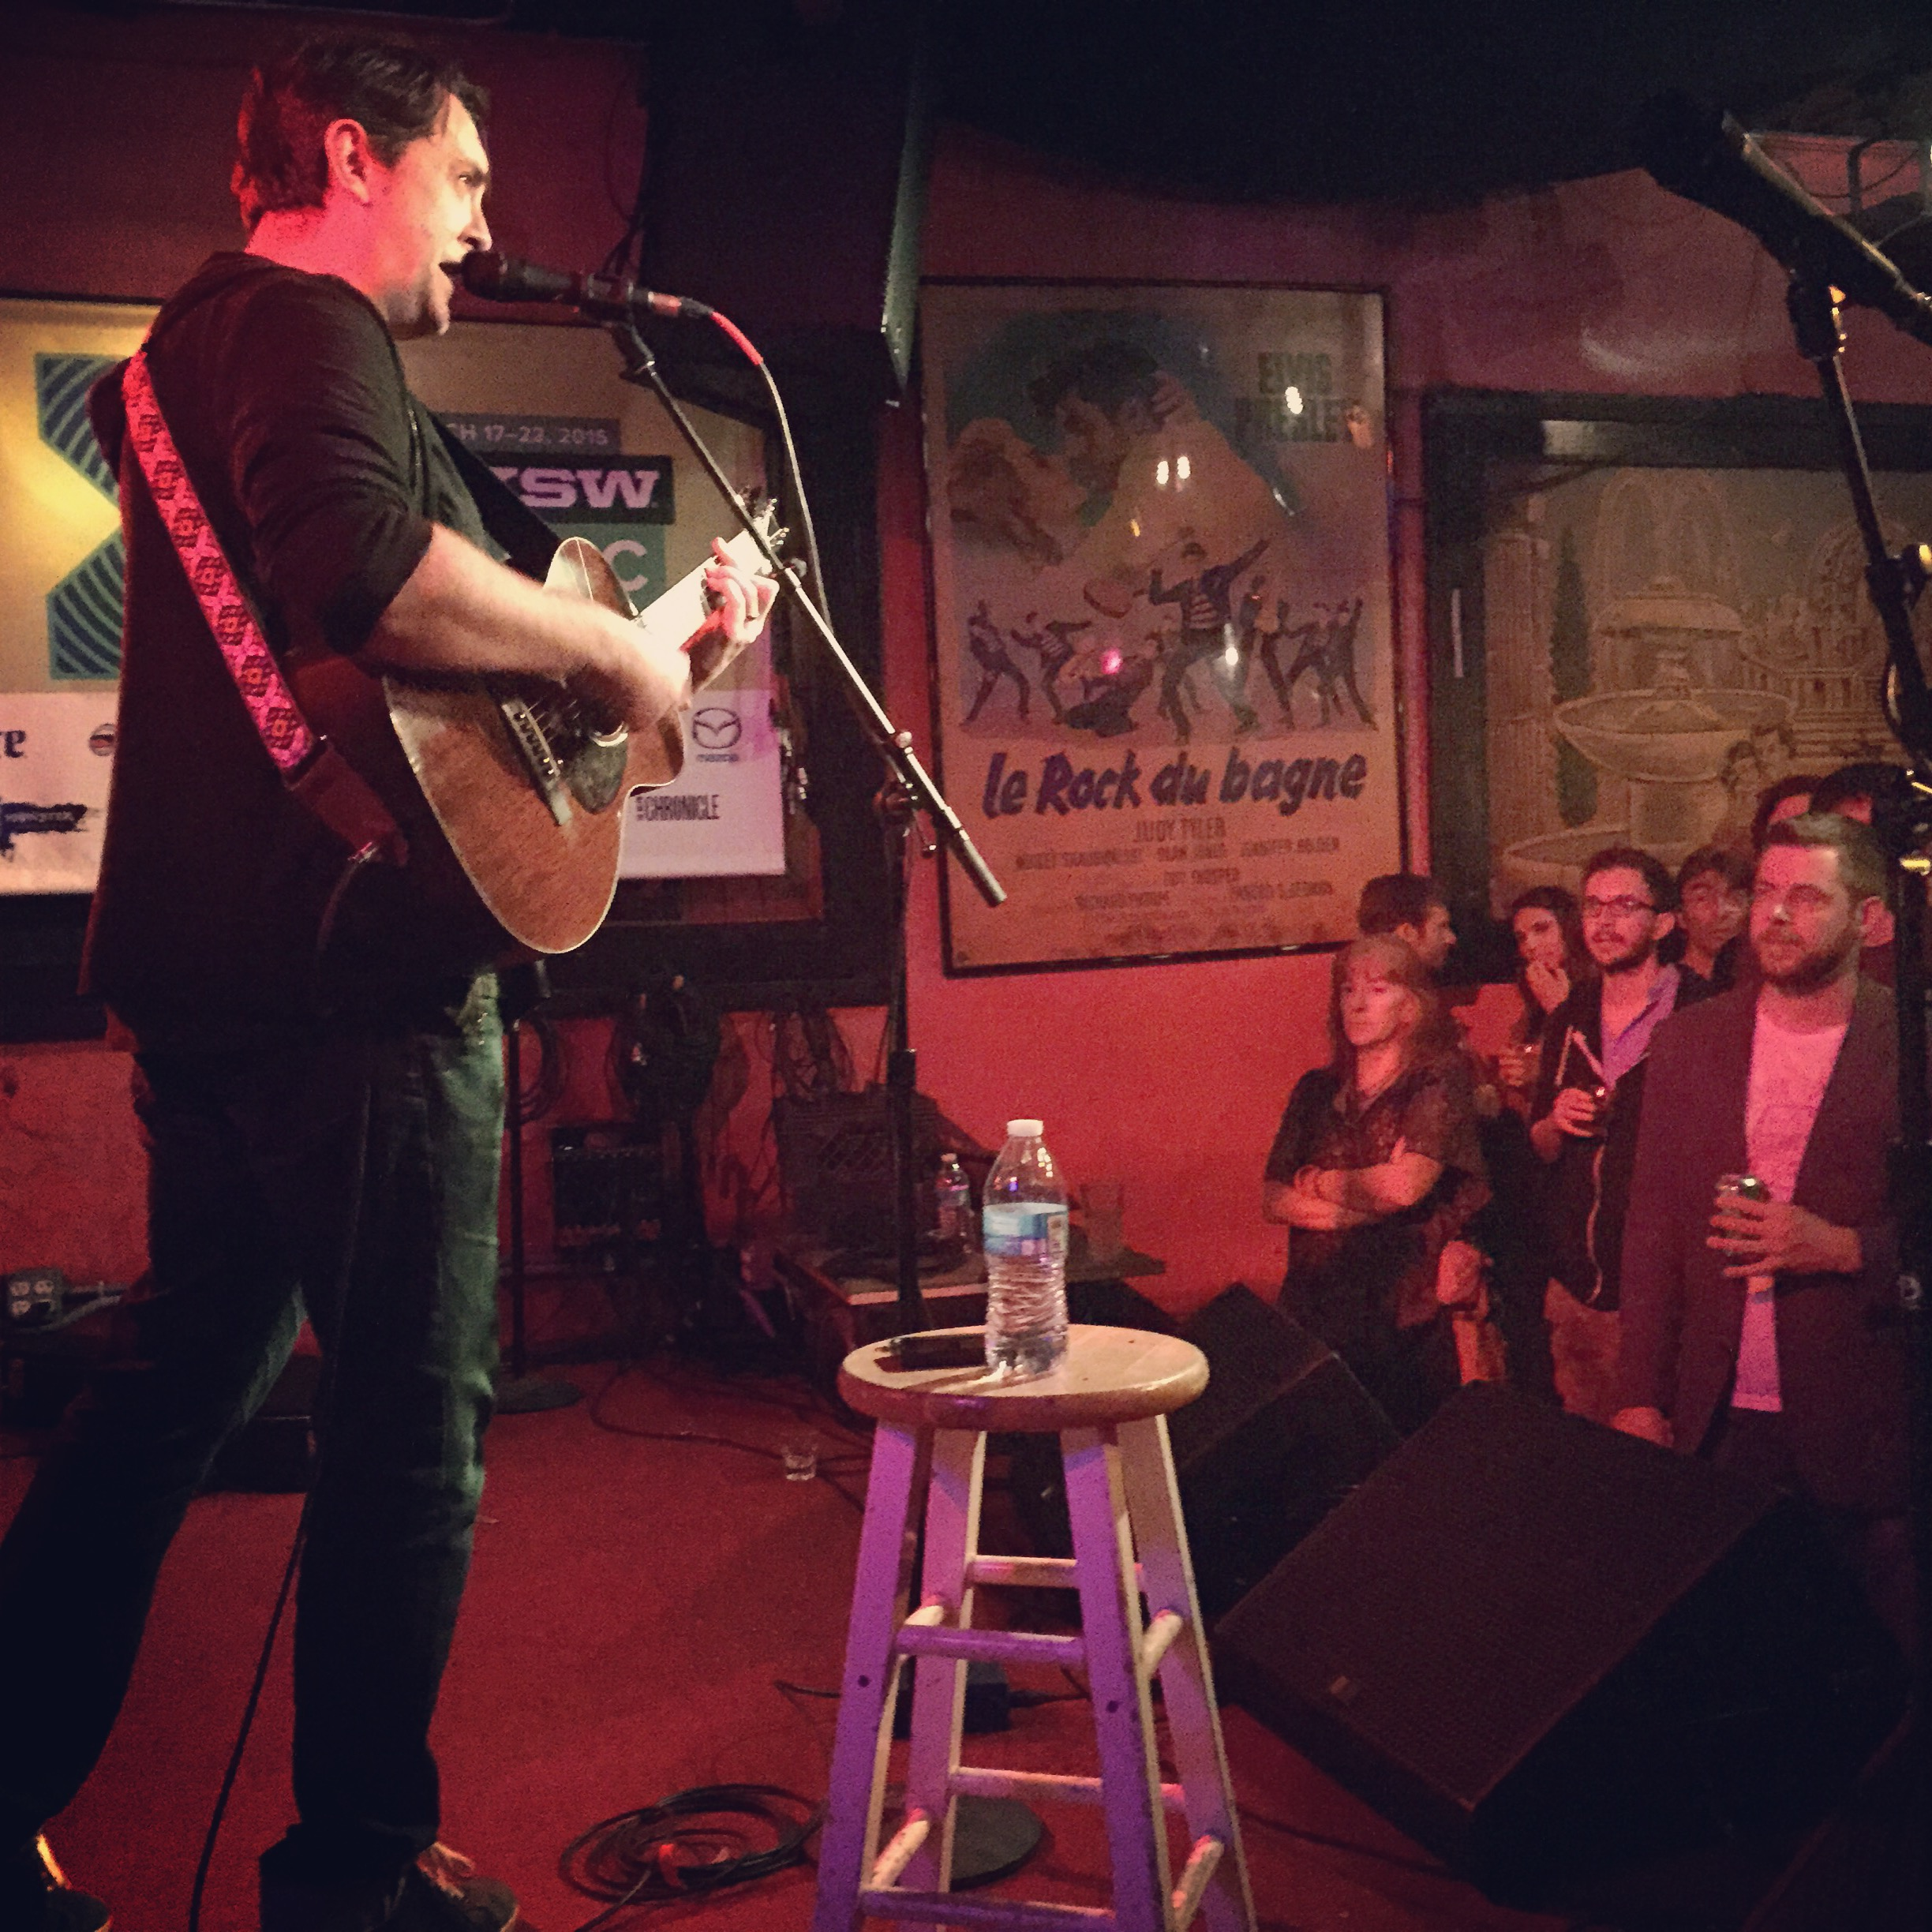 Jeff Austin performs his first SXSW set in Austin, Texas. He performed solo at the Continental Club on March 19, 2015. Photo by Quentin Young